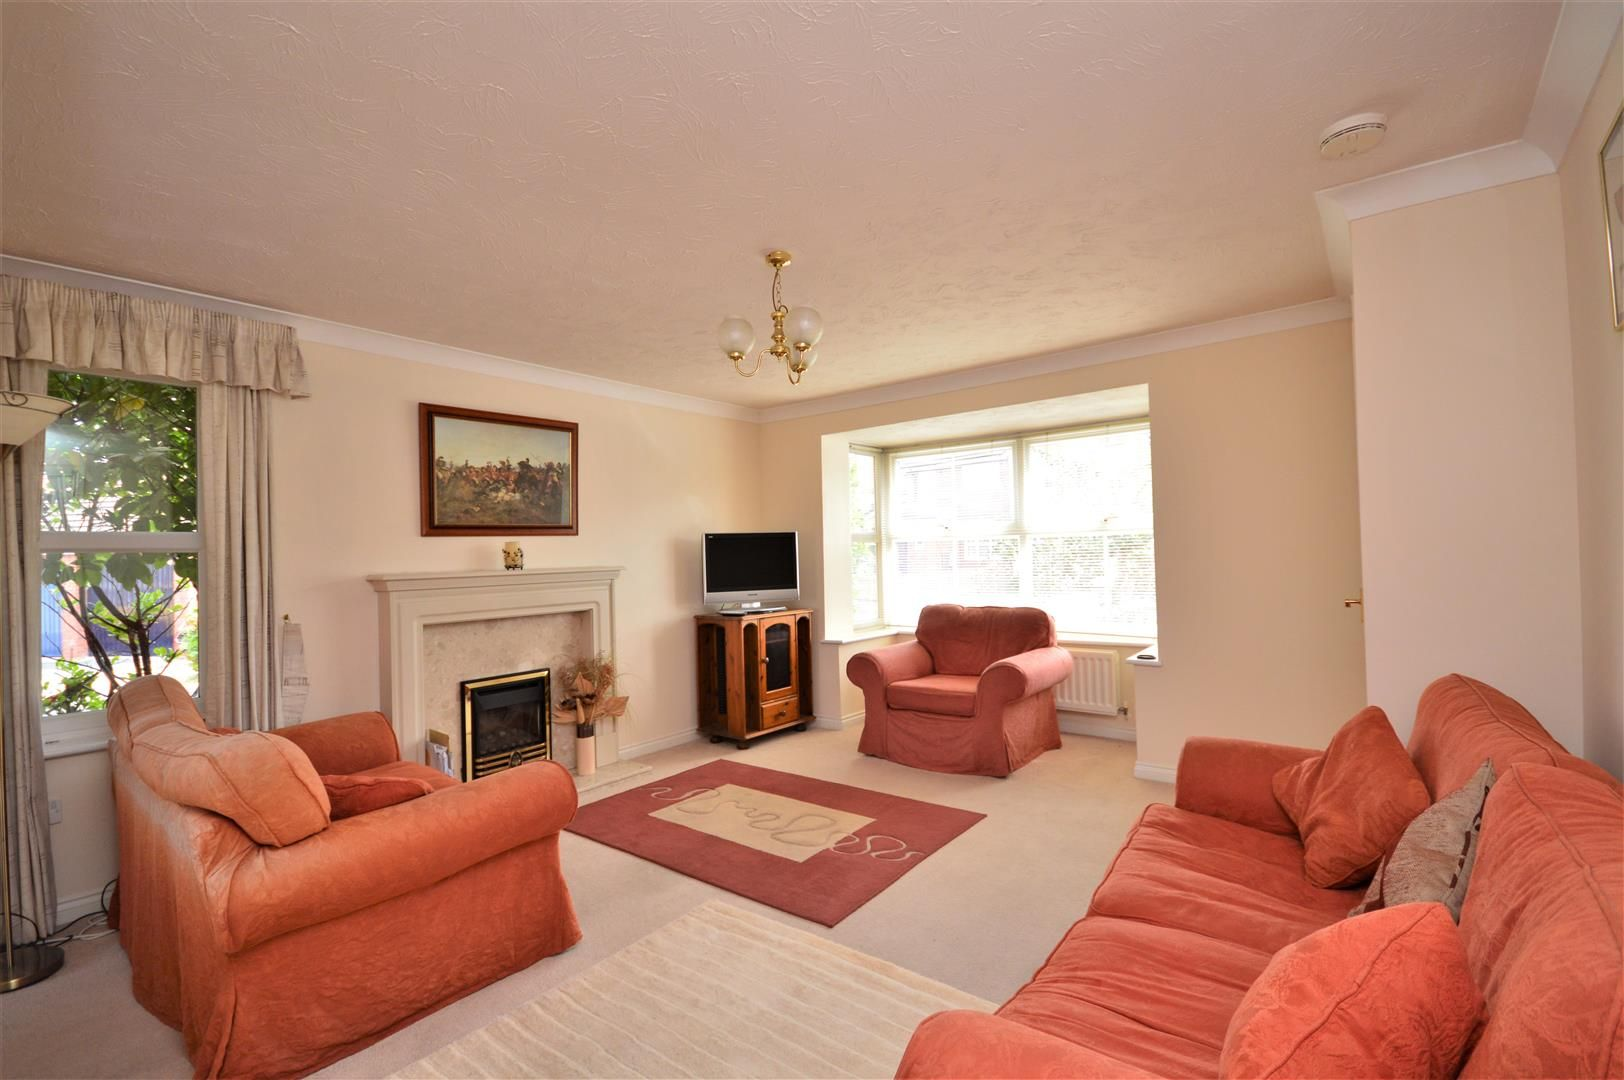 4 bed detached for sale in Belmont  - Property Image 3